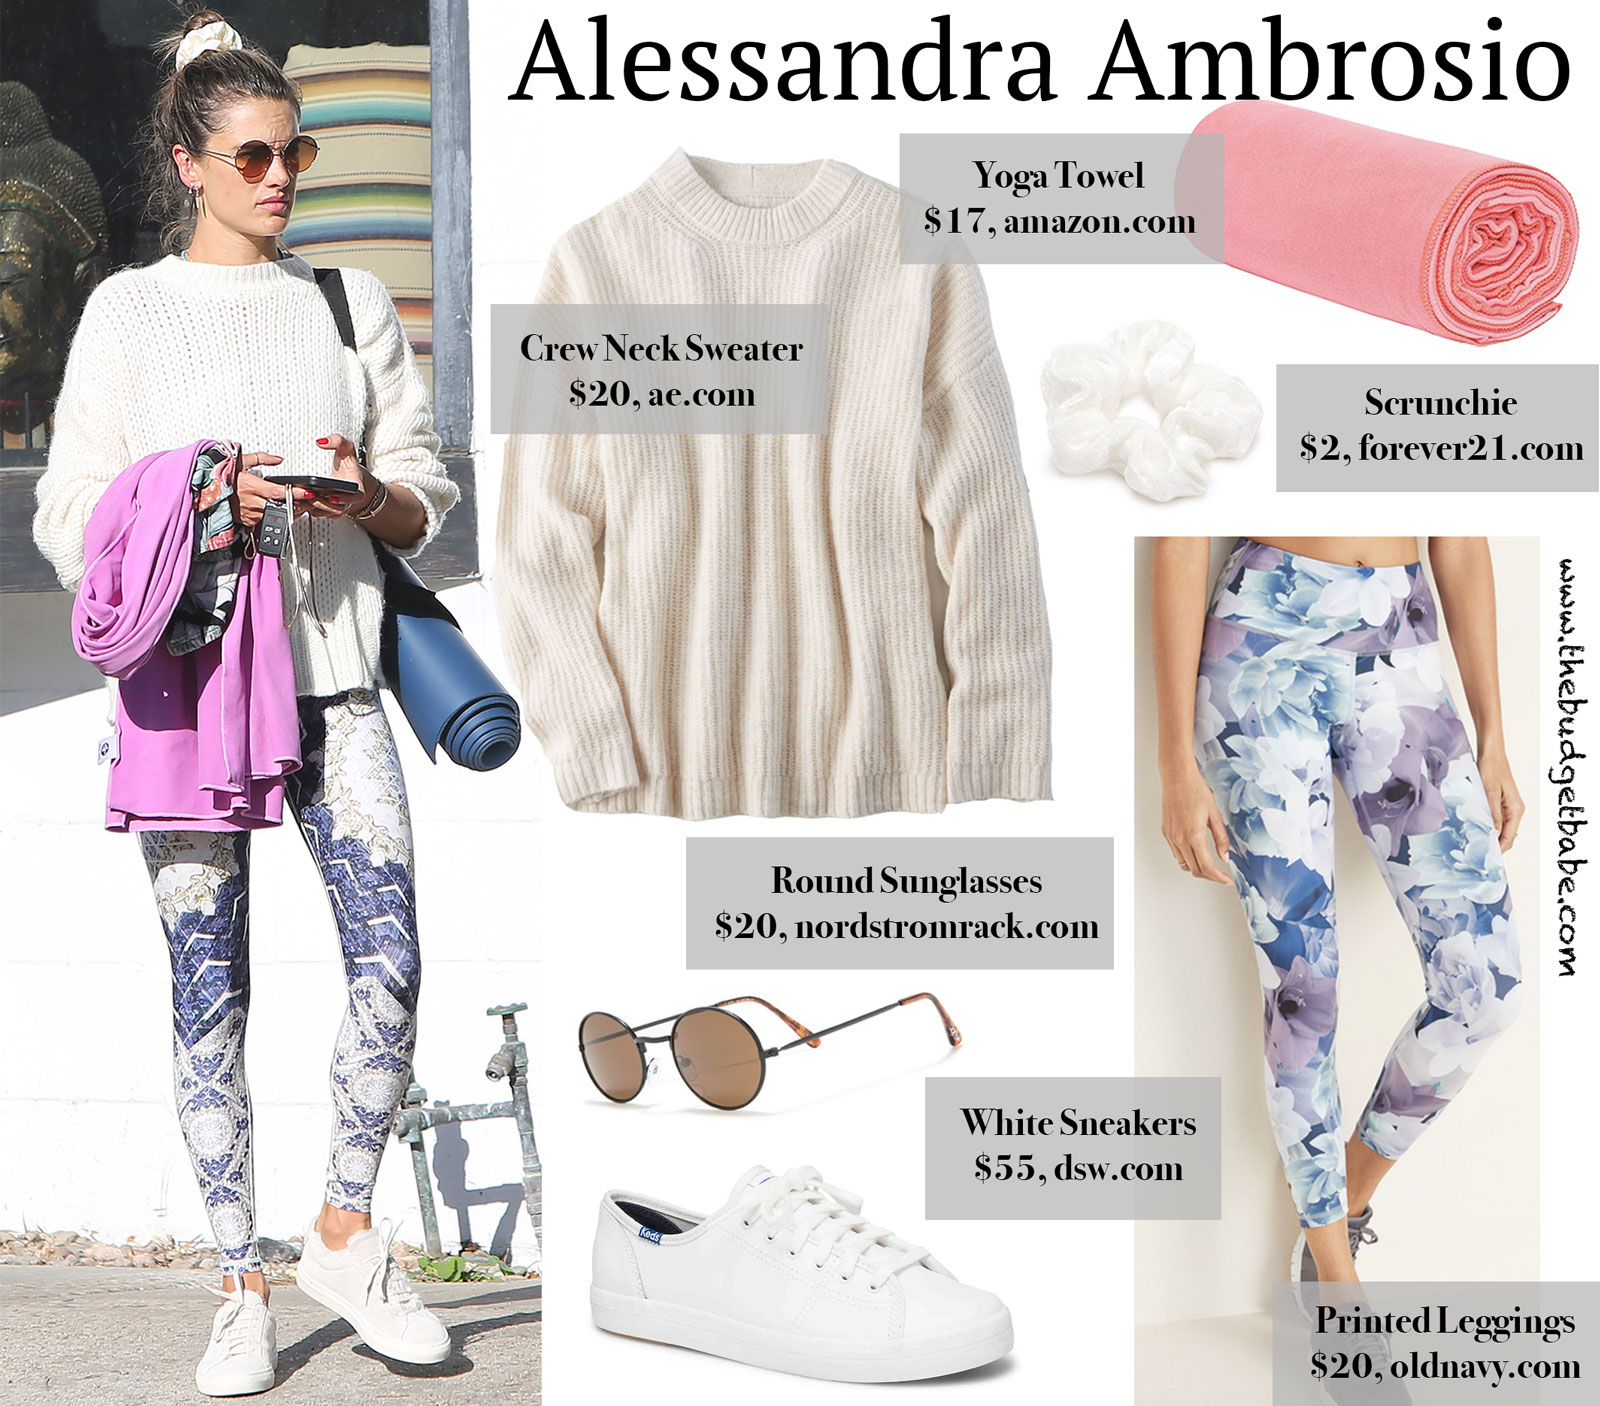 Alessandra Ambrosio Yoga Look for Less